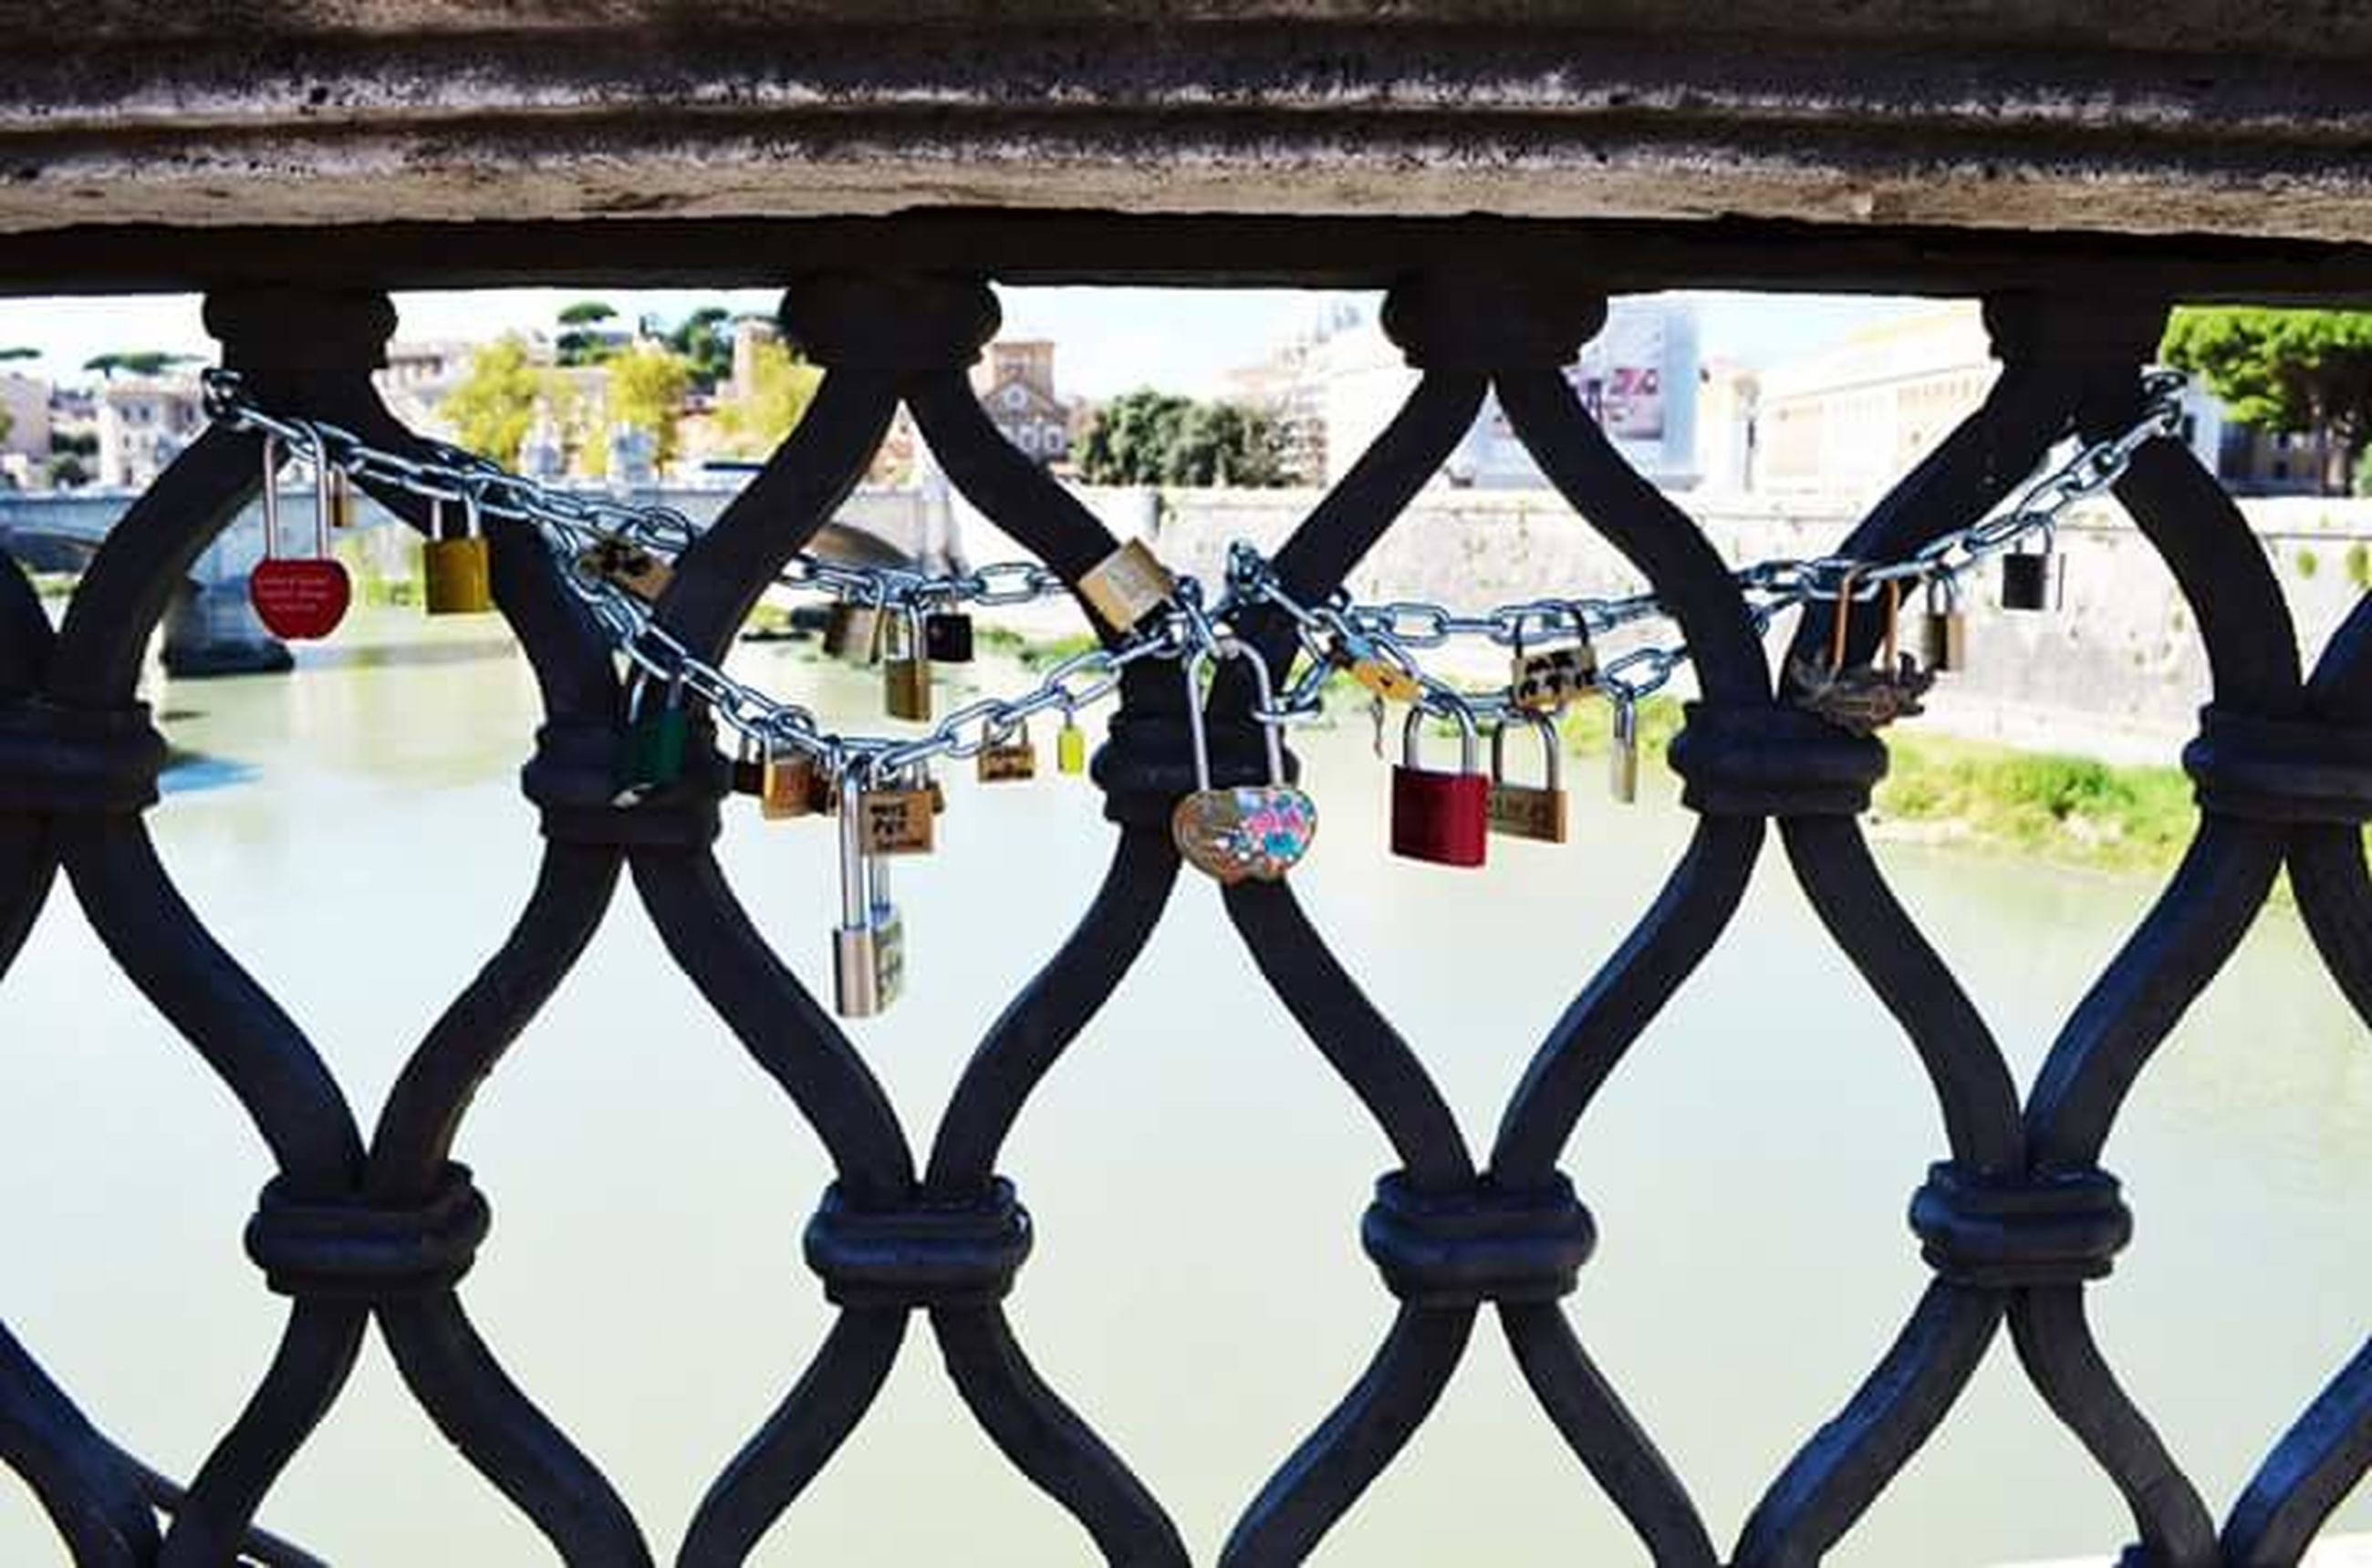 metal, metallic, protection, security, hanging, safety, built structure, architecture, padlock, close-up, fence, railing, day, outdoors, lock, gate, no people, rusty, building exterior, focus on foreground